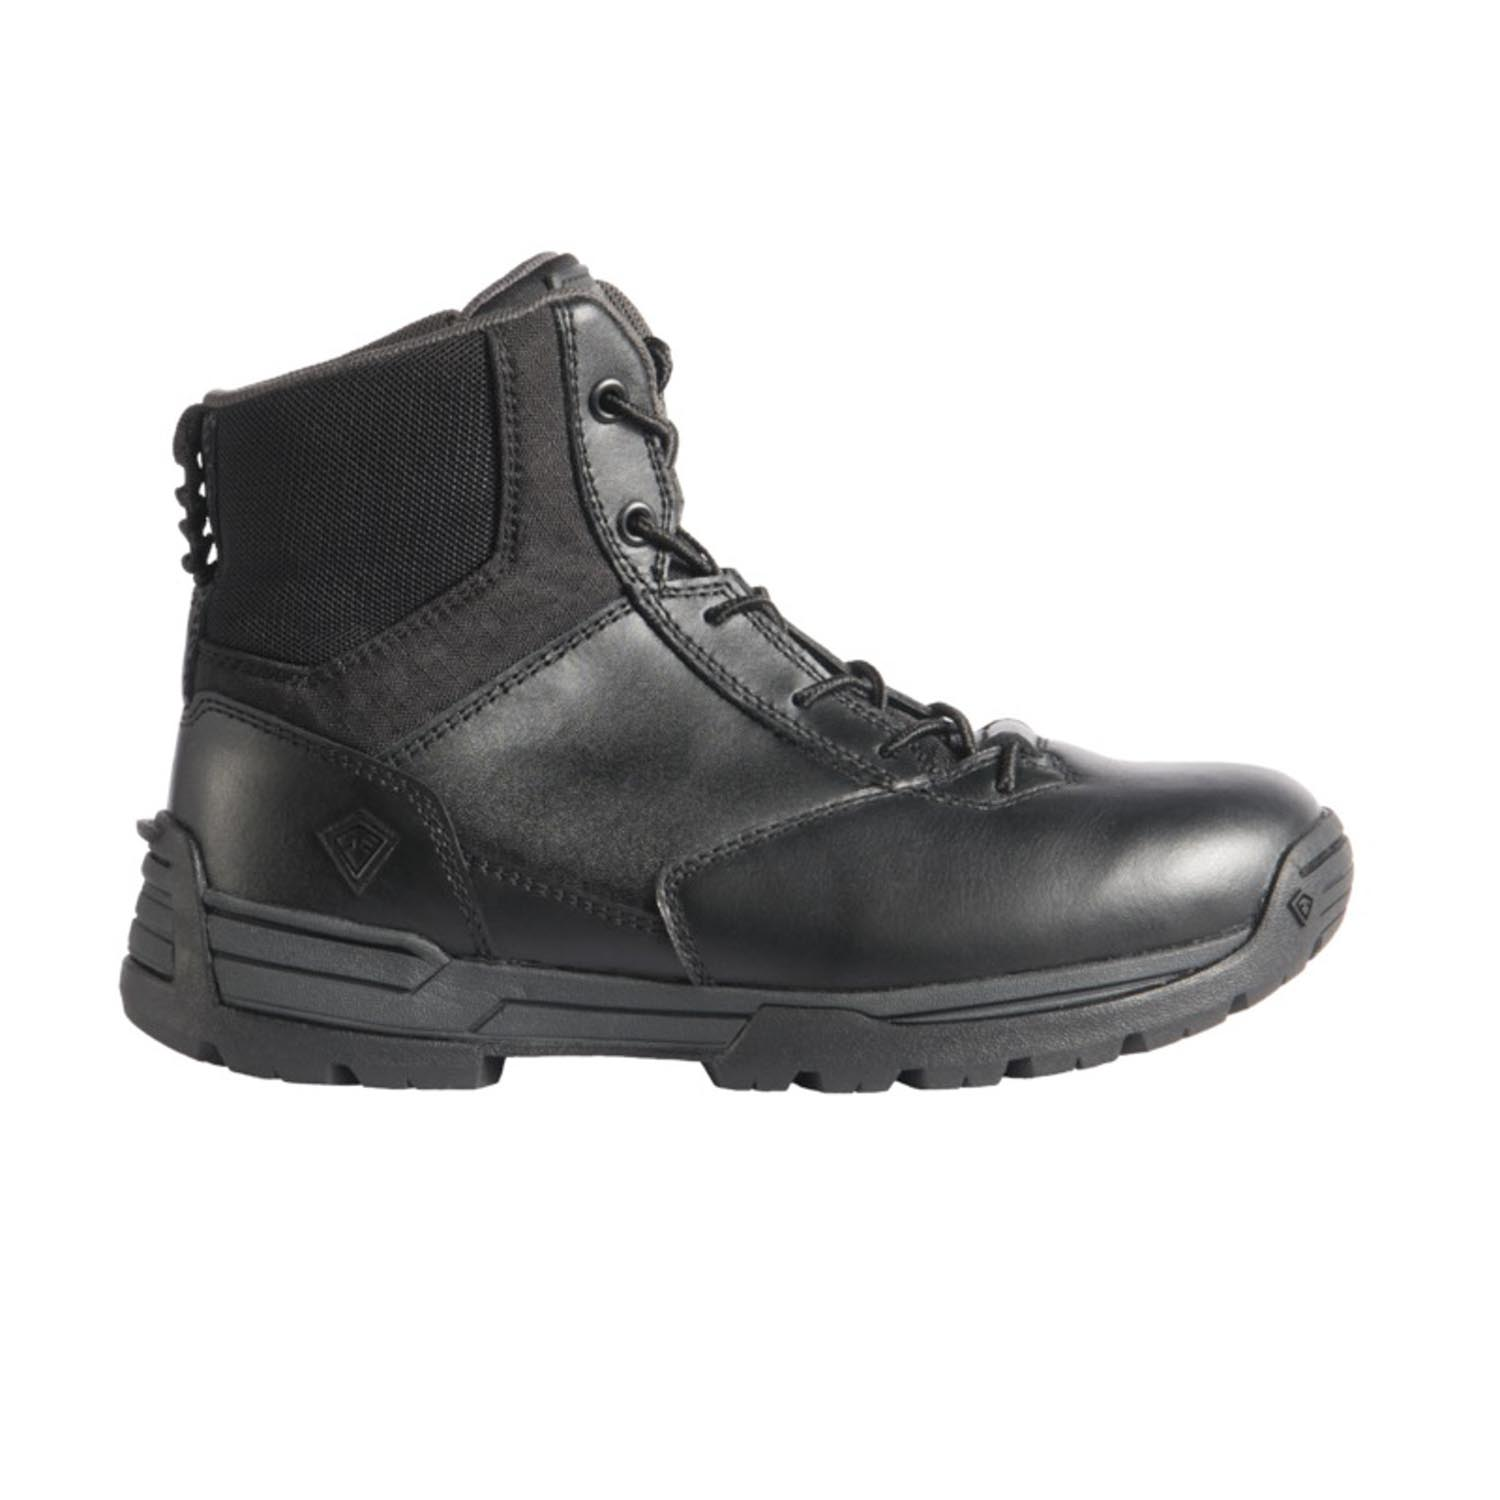 "First Tactical Women's 6"" Side-Zip Duty Boots"